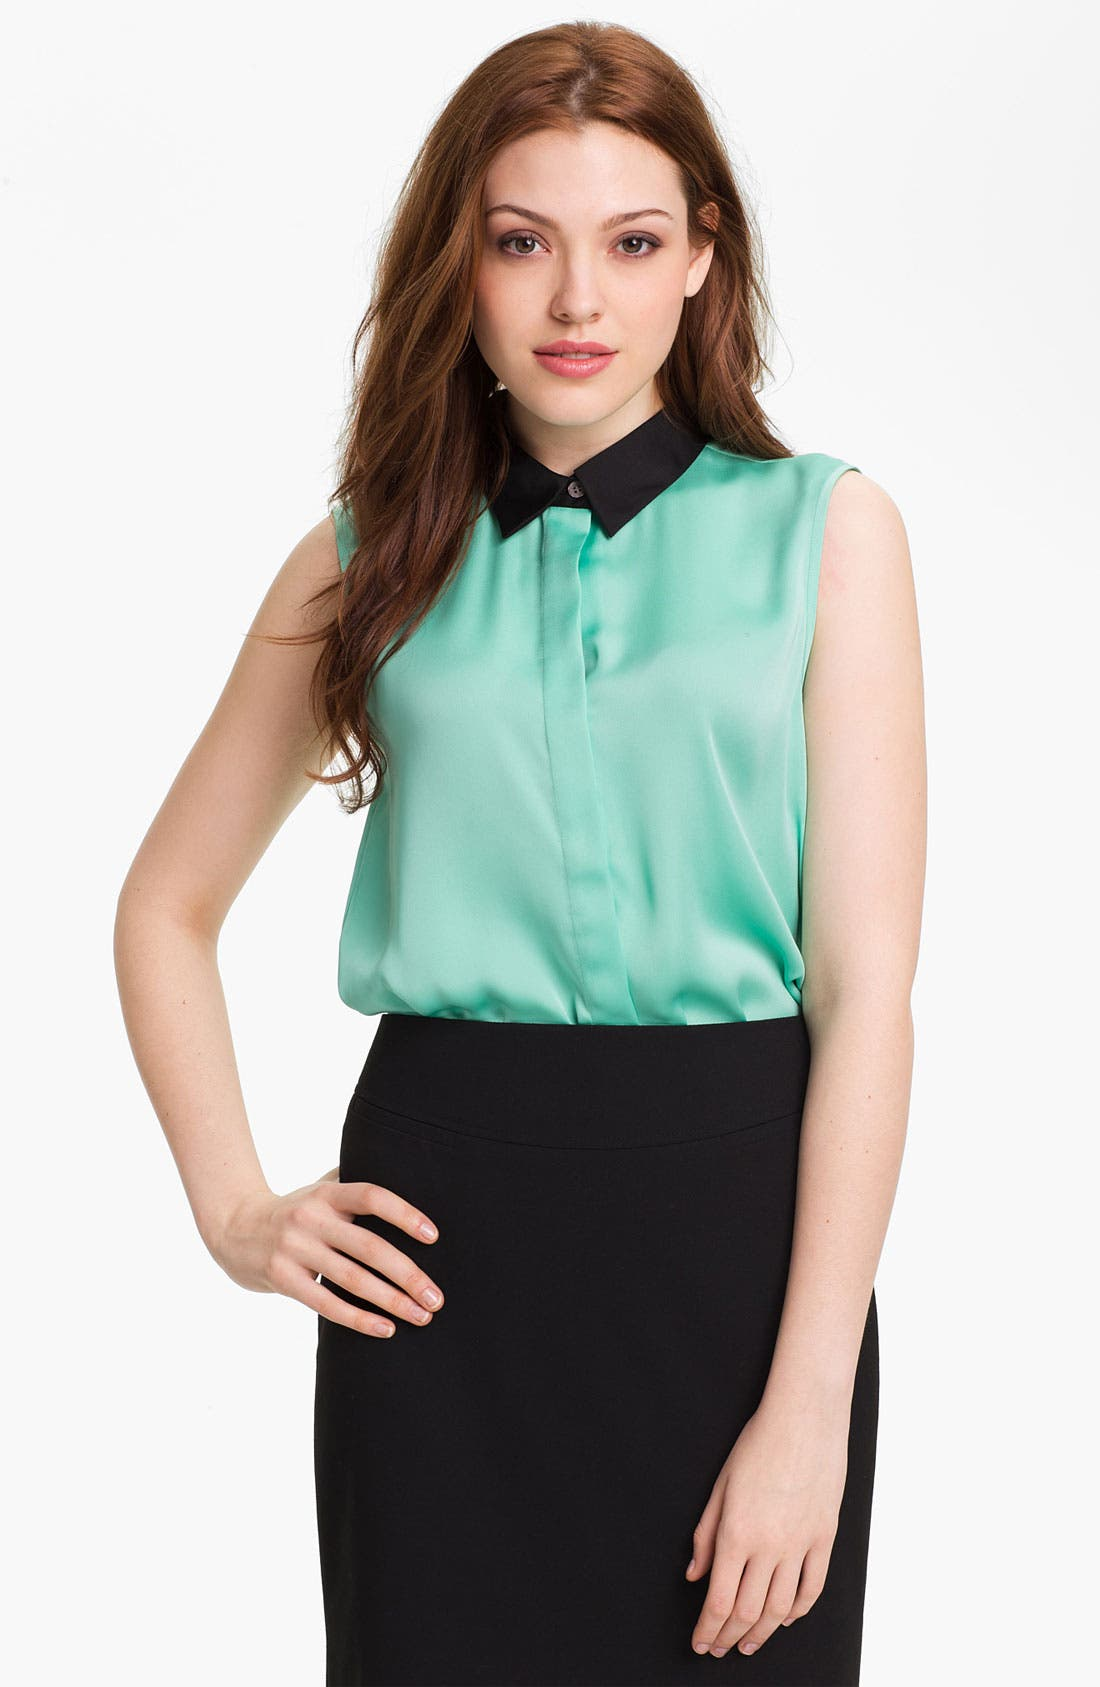 Alternate Image 1 Selected - Vince Camuto Contrast Collar Sleeveless Blouse